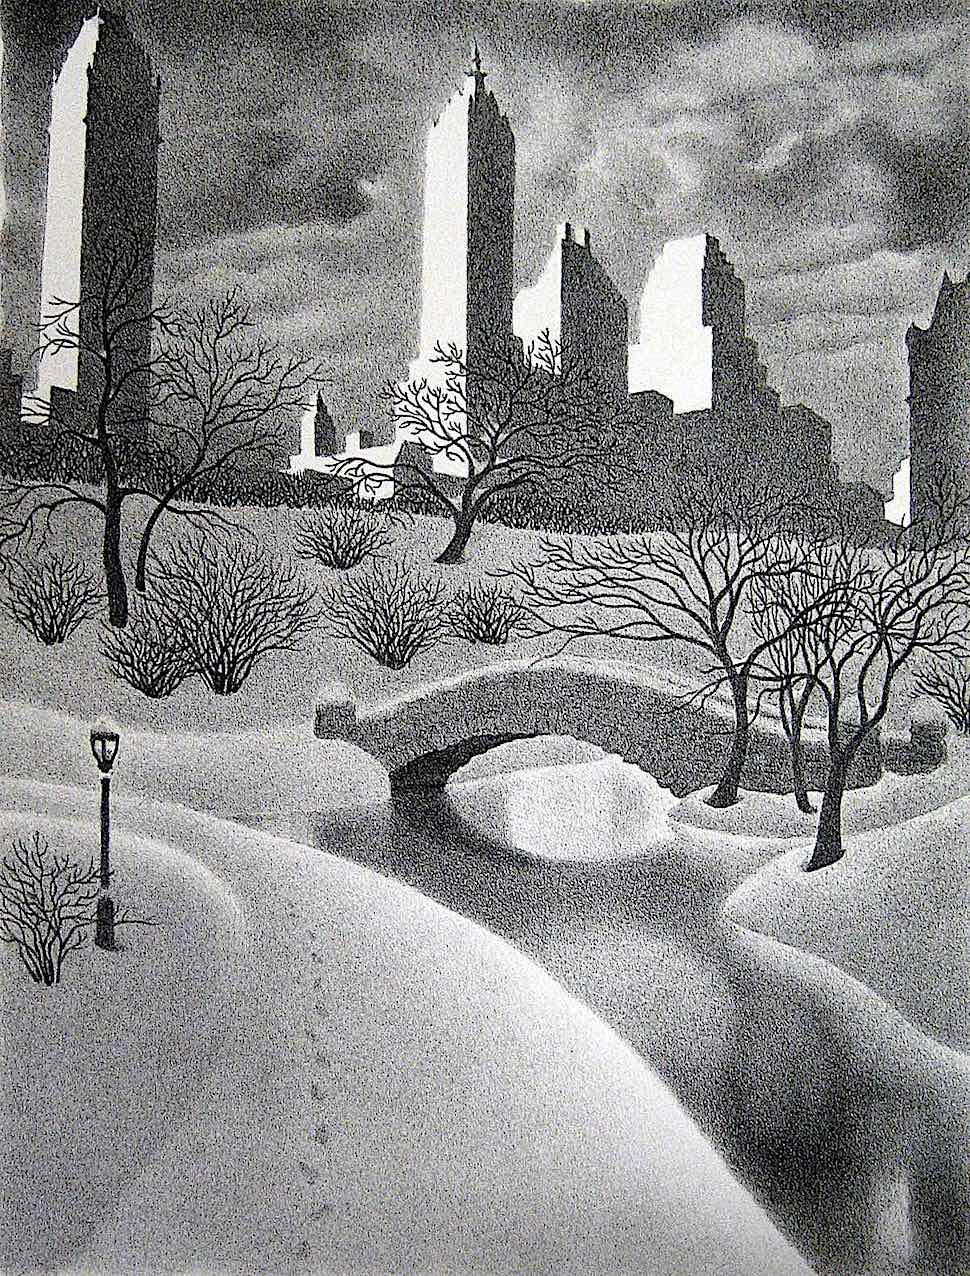 Ellison Hoover, a snowing city park at night